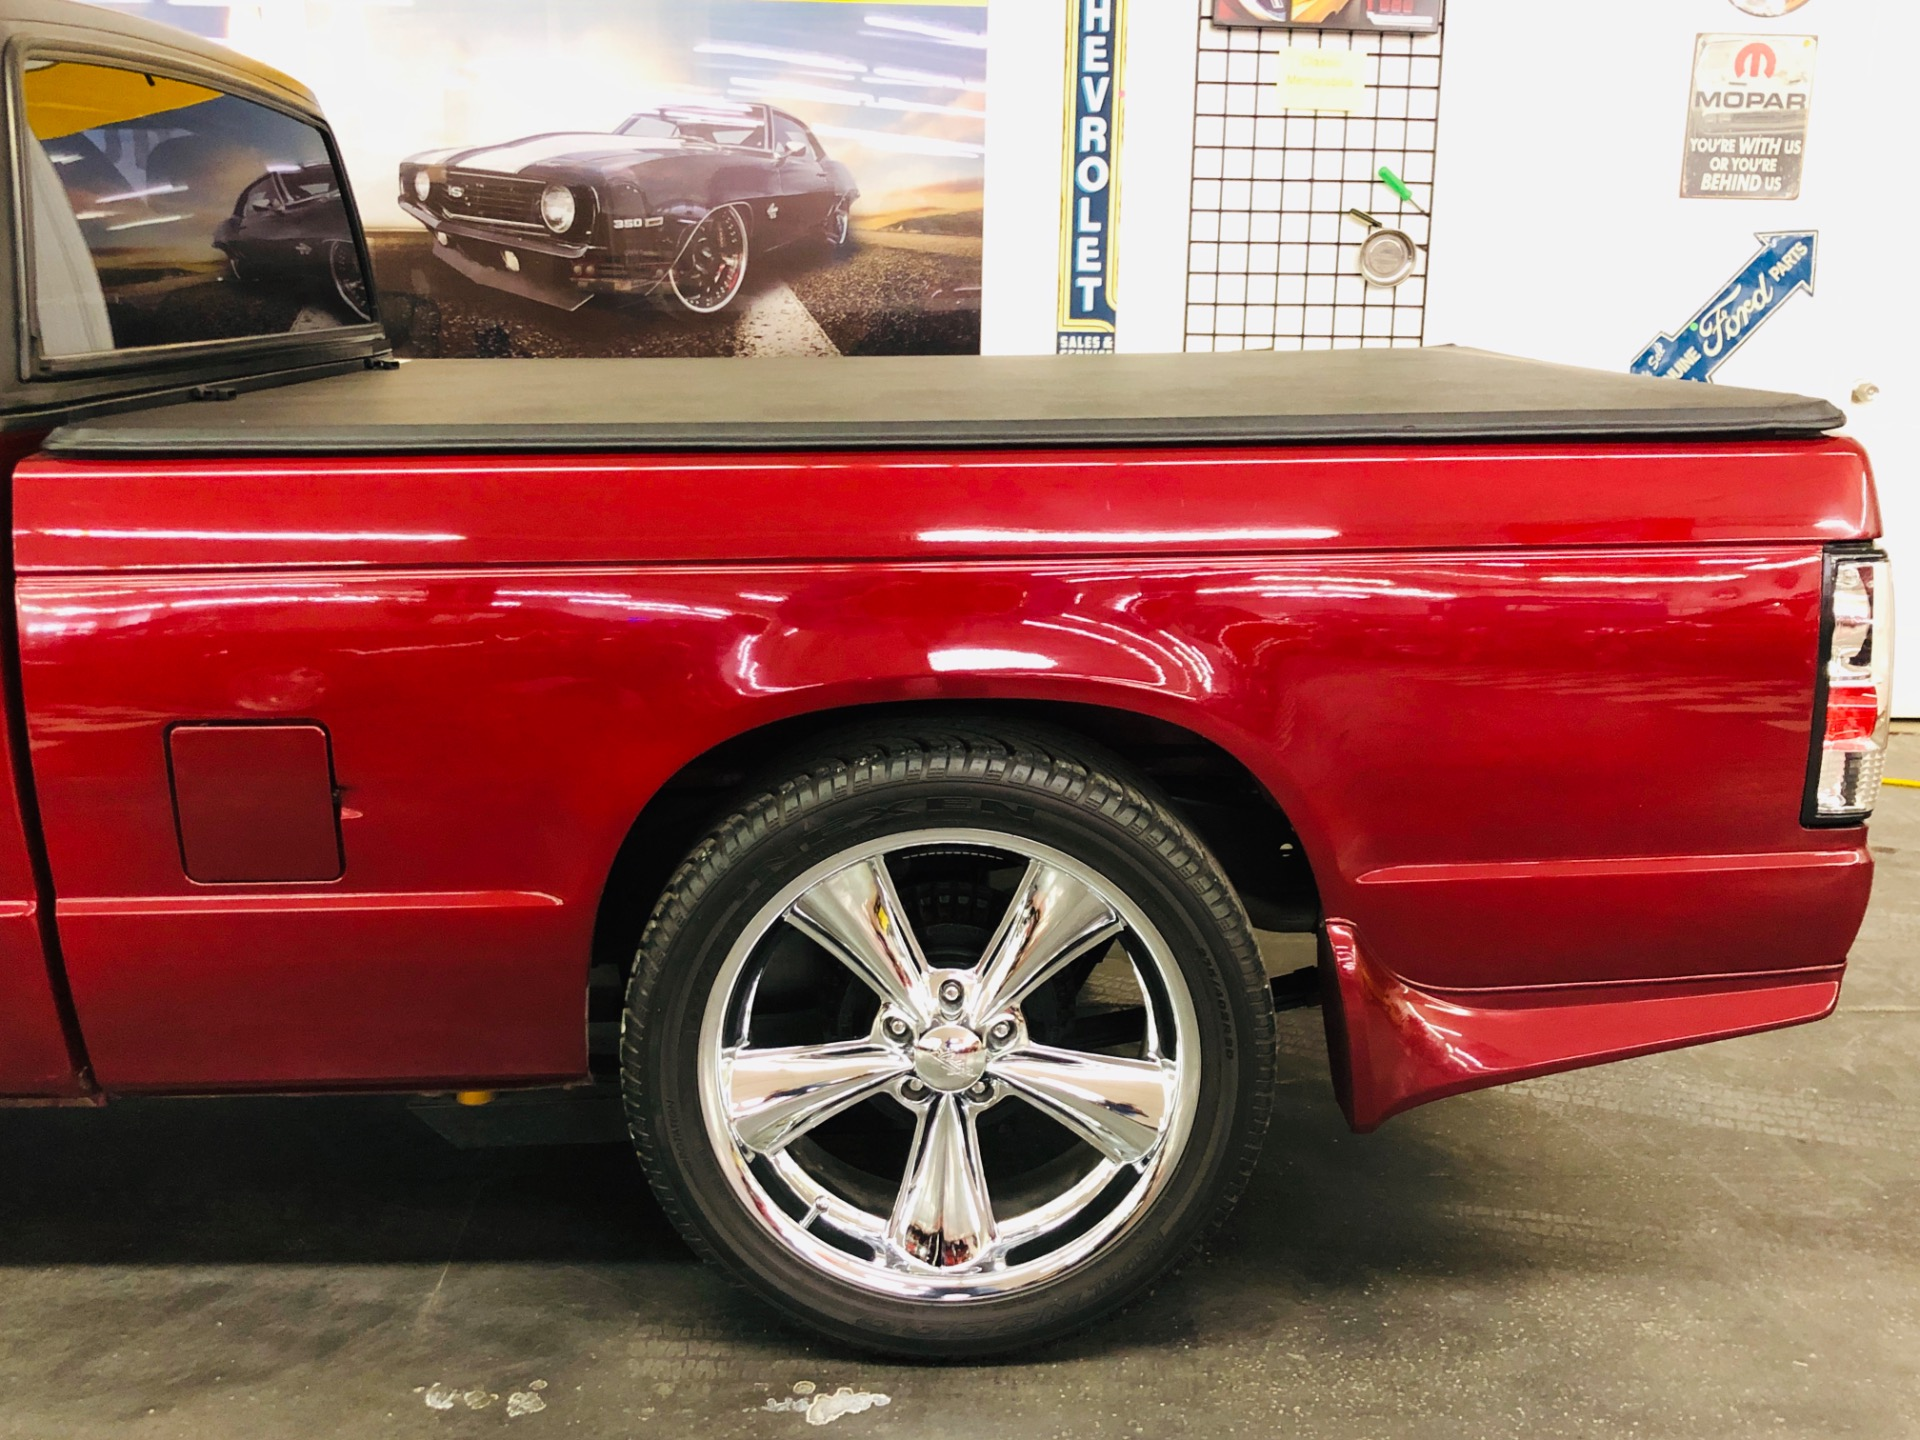 Used 1983 Chevrolet S-10 -CUSTOM SHOW TRUCK - REMOVABLE TOP - 383 STROKER - | Mundelein, IL